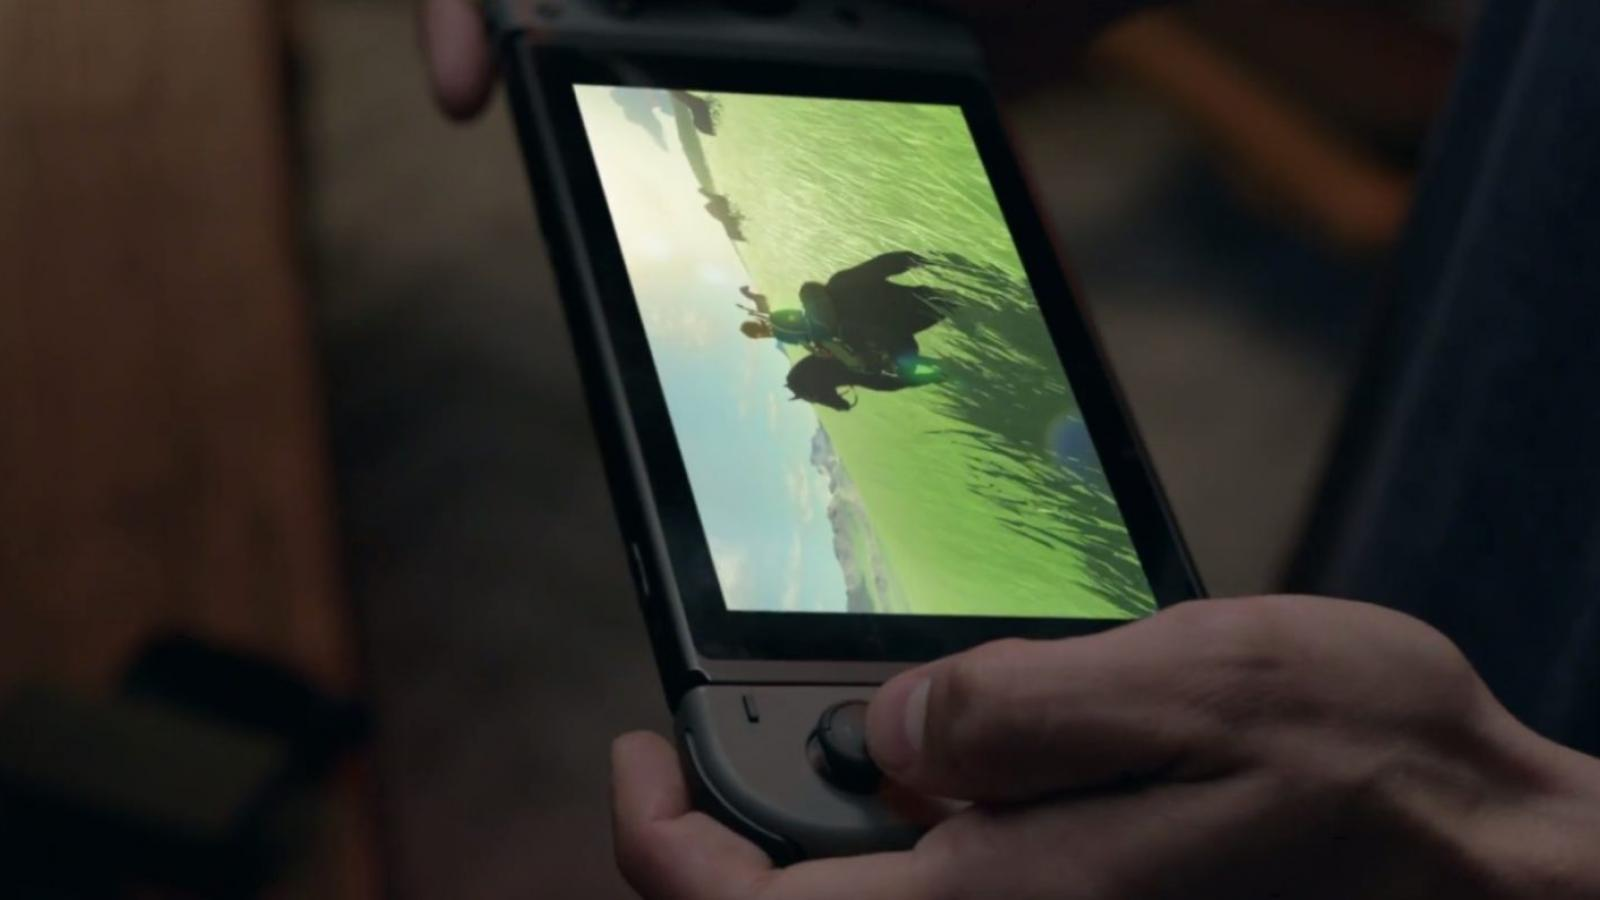 Weekly Roundup: Next Apple Event, Nintendo Switch, Red Dead Redemption 2 and more.